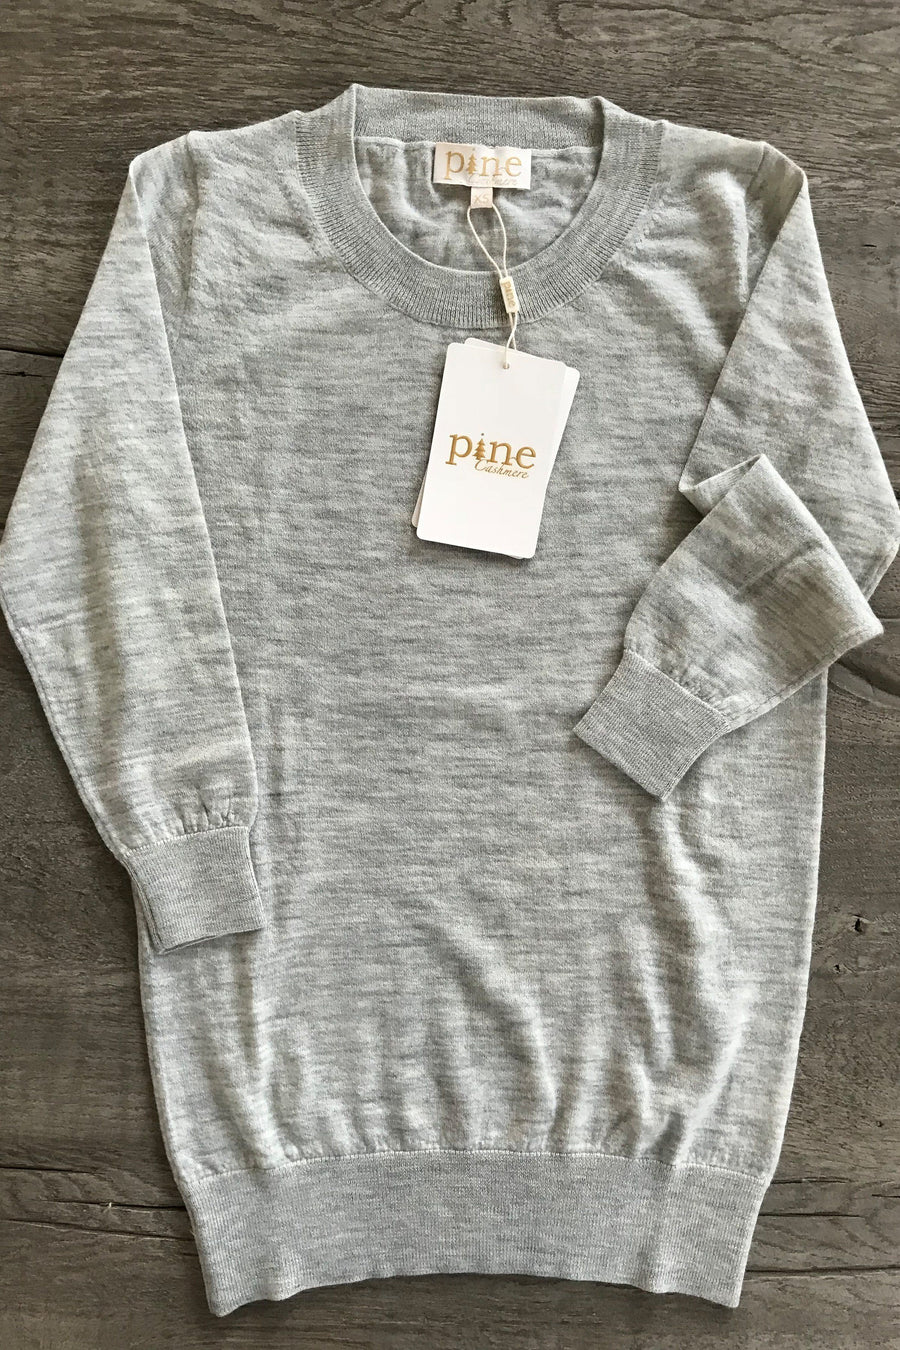 pine cashmere luxury women's crewneck lightweight 100% pure cashmere 3/4 sleeve top in grey